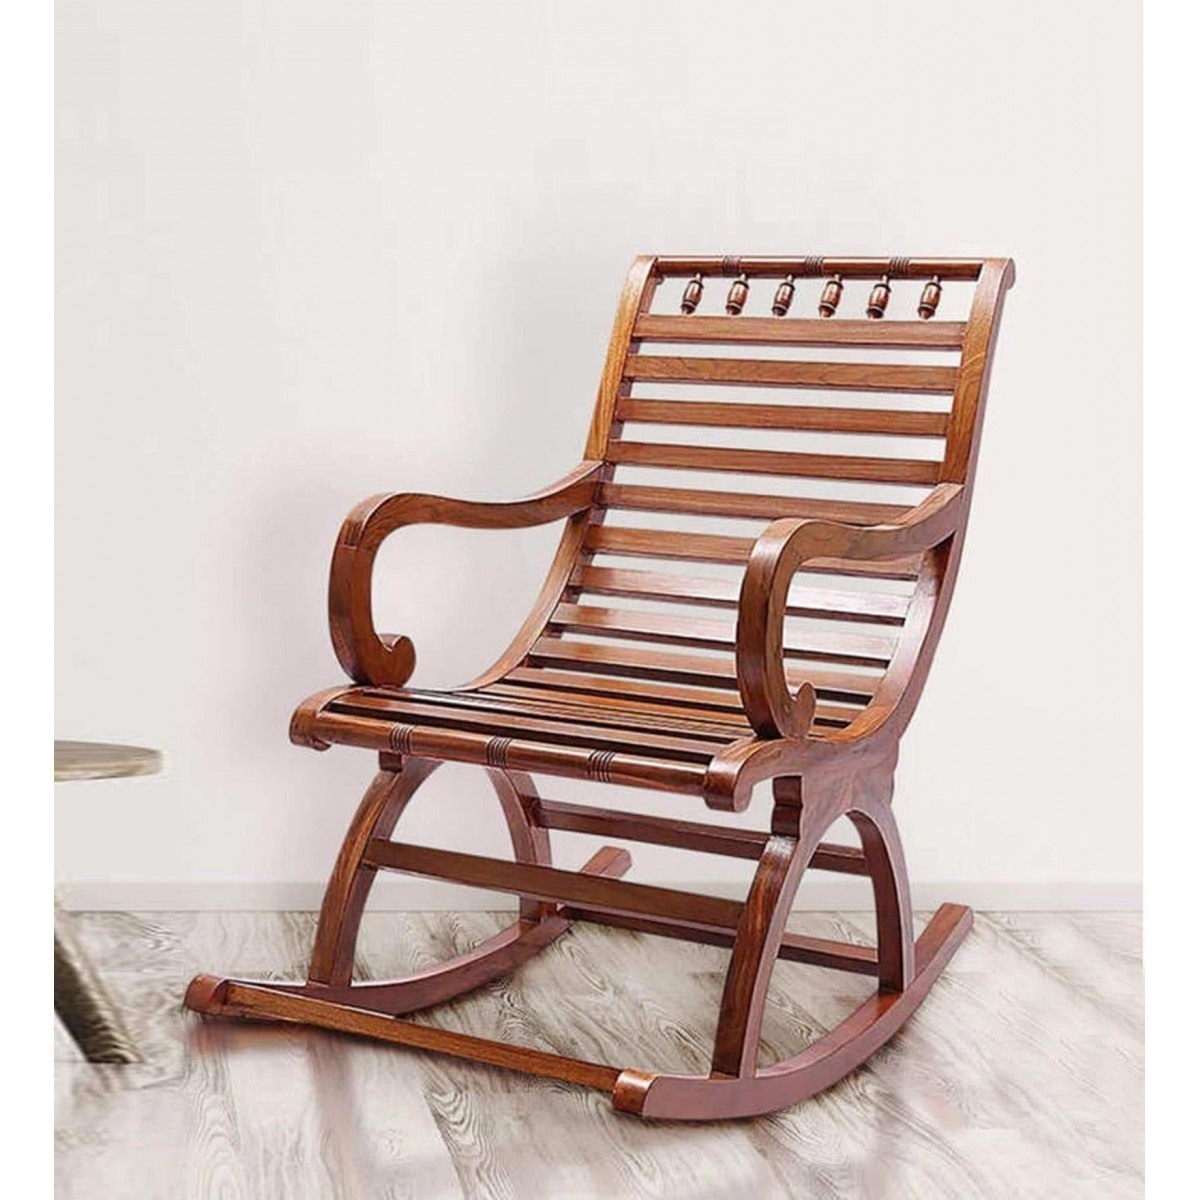 Rocking Chairs For Adults Pertaining To Popular Rocking Chairs Online  Shop Wooden Rocking Chair At Here !! (View 11 of 15)